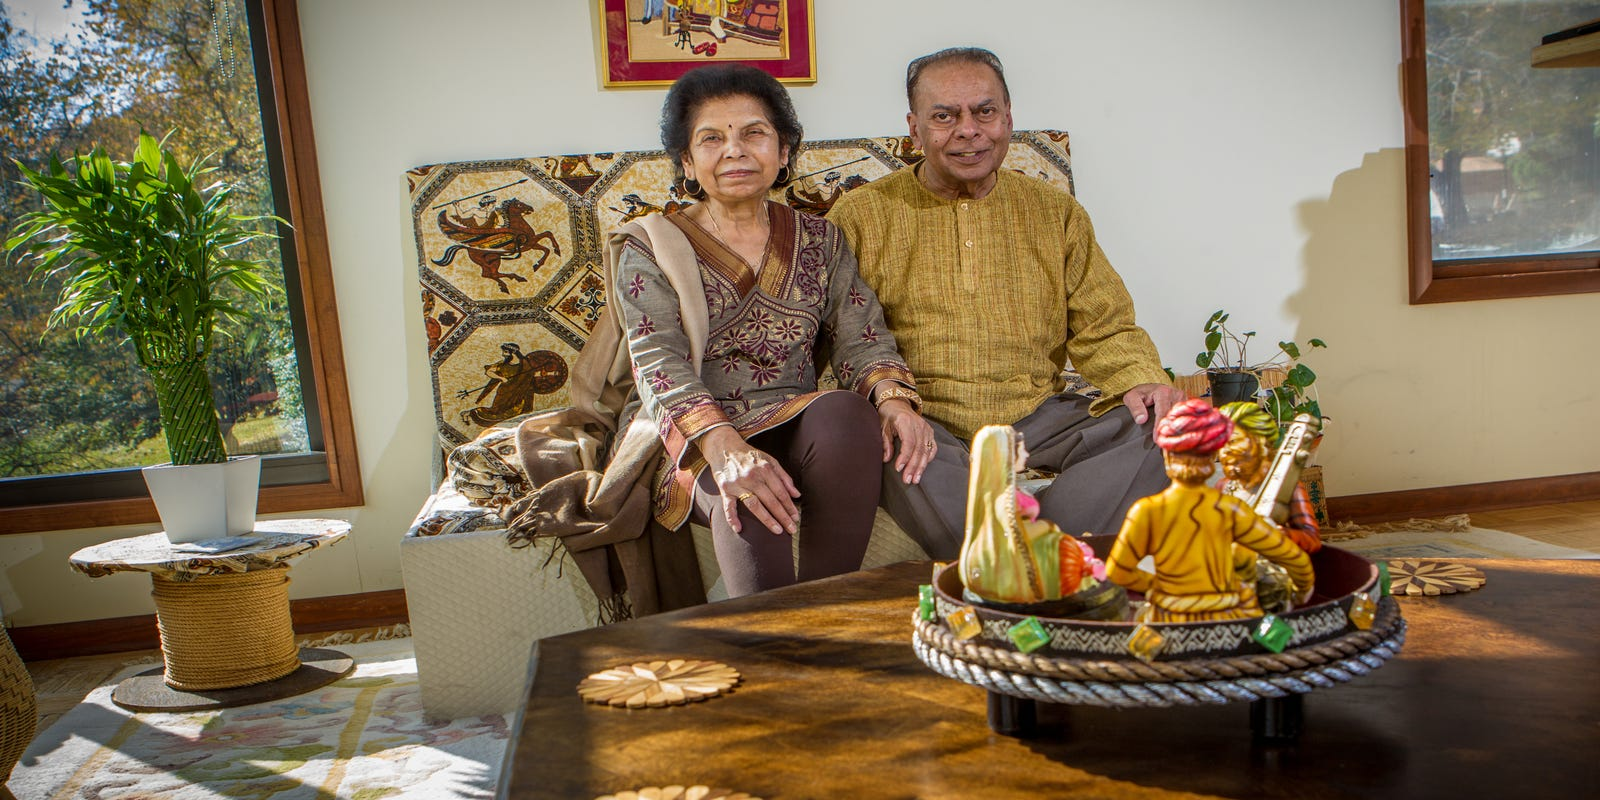 Delaware's Asians a large minority with clout